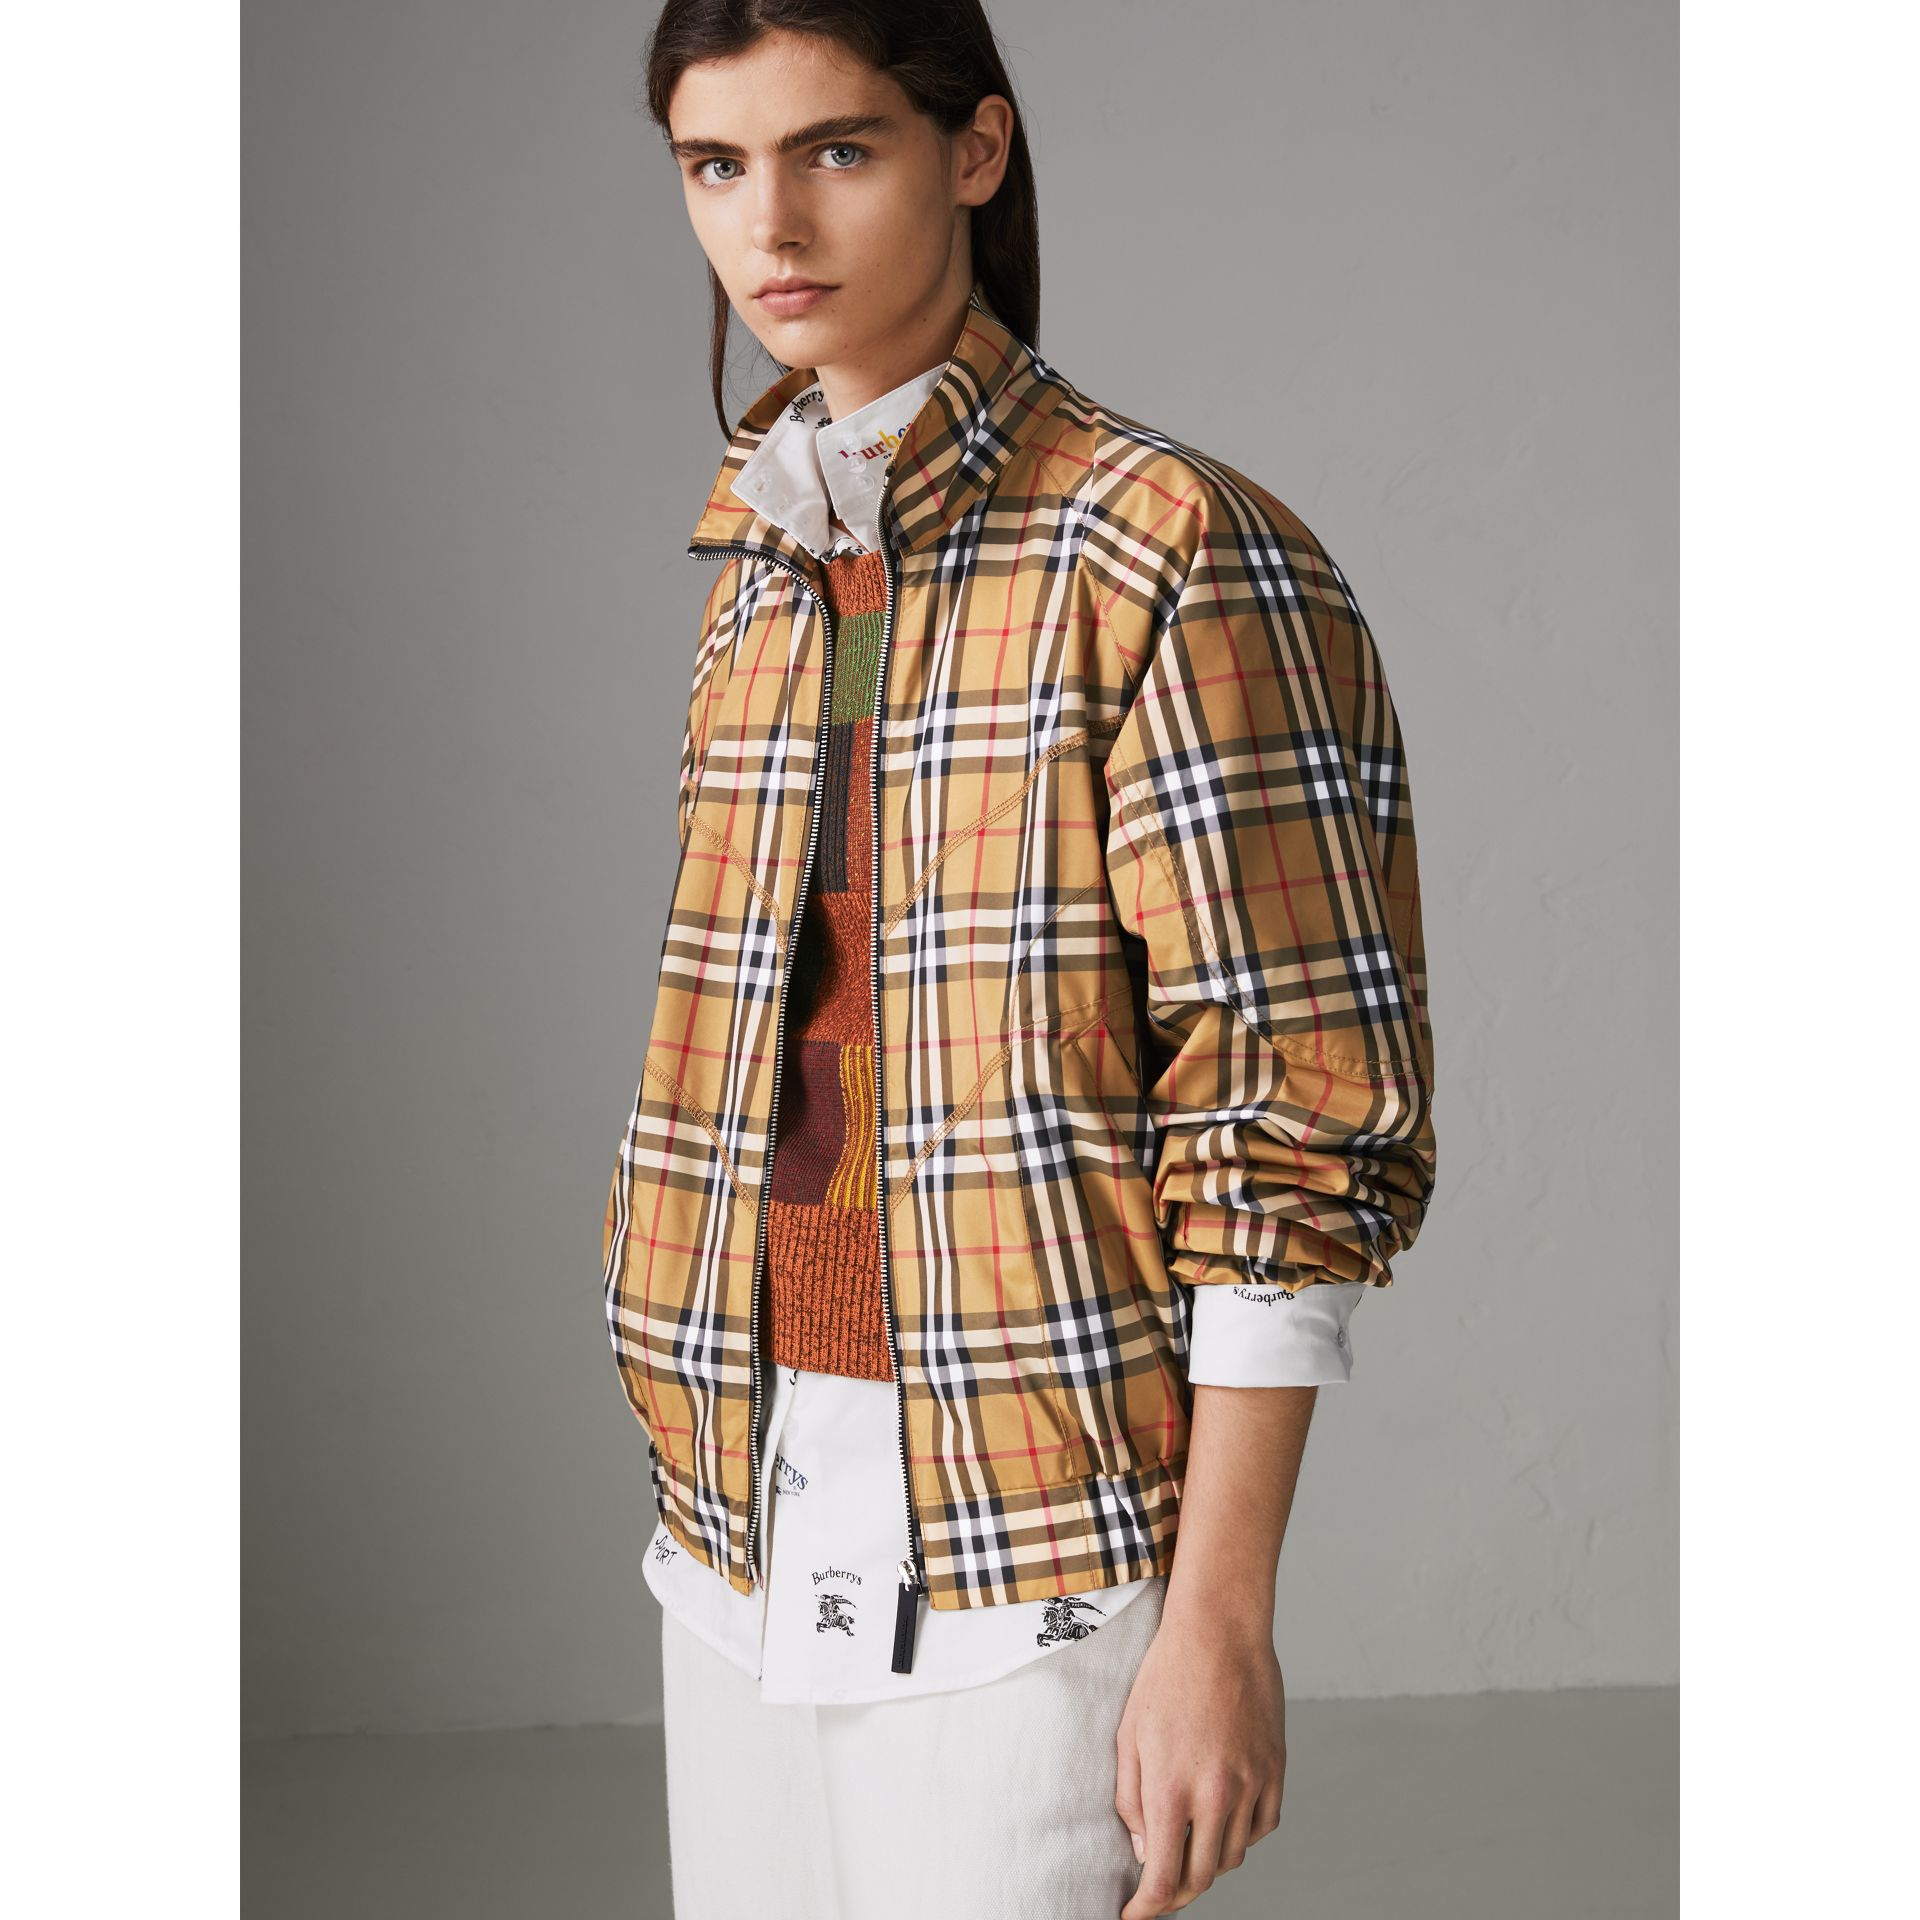 Topstitch Detail Vintage Check Harrington Jacket in Antique Yellow - Women | Burberry United States - gallery image 5